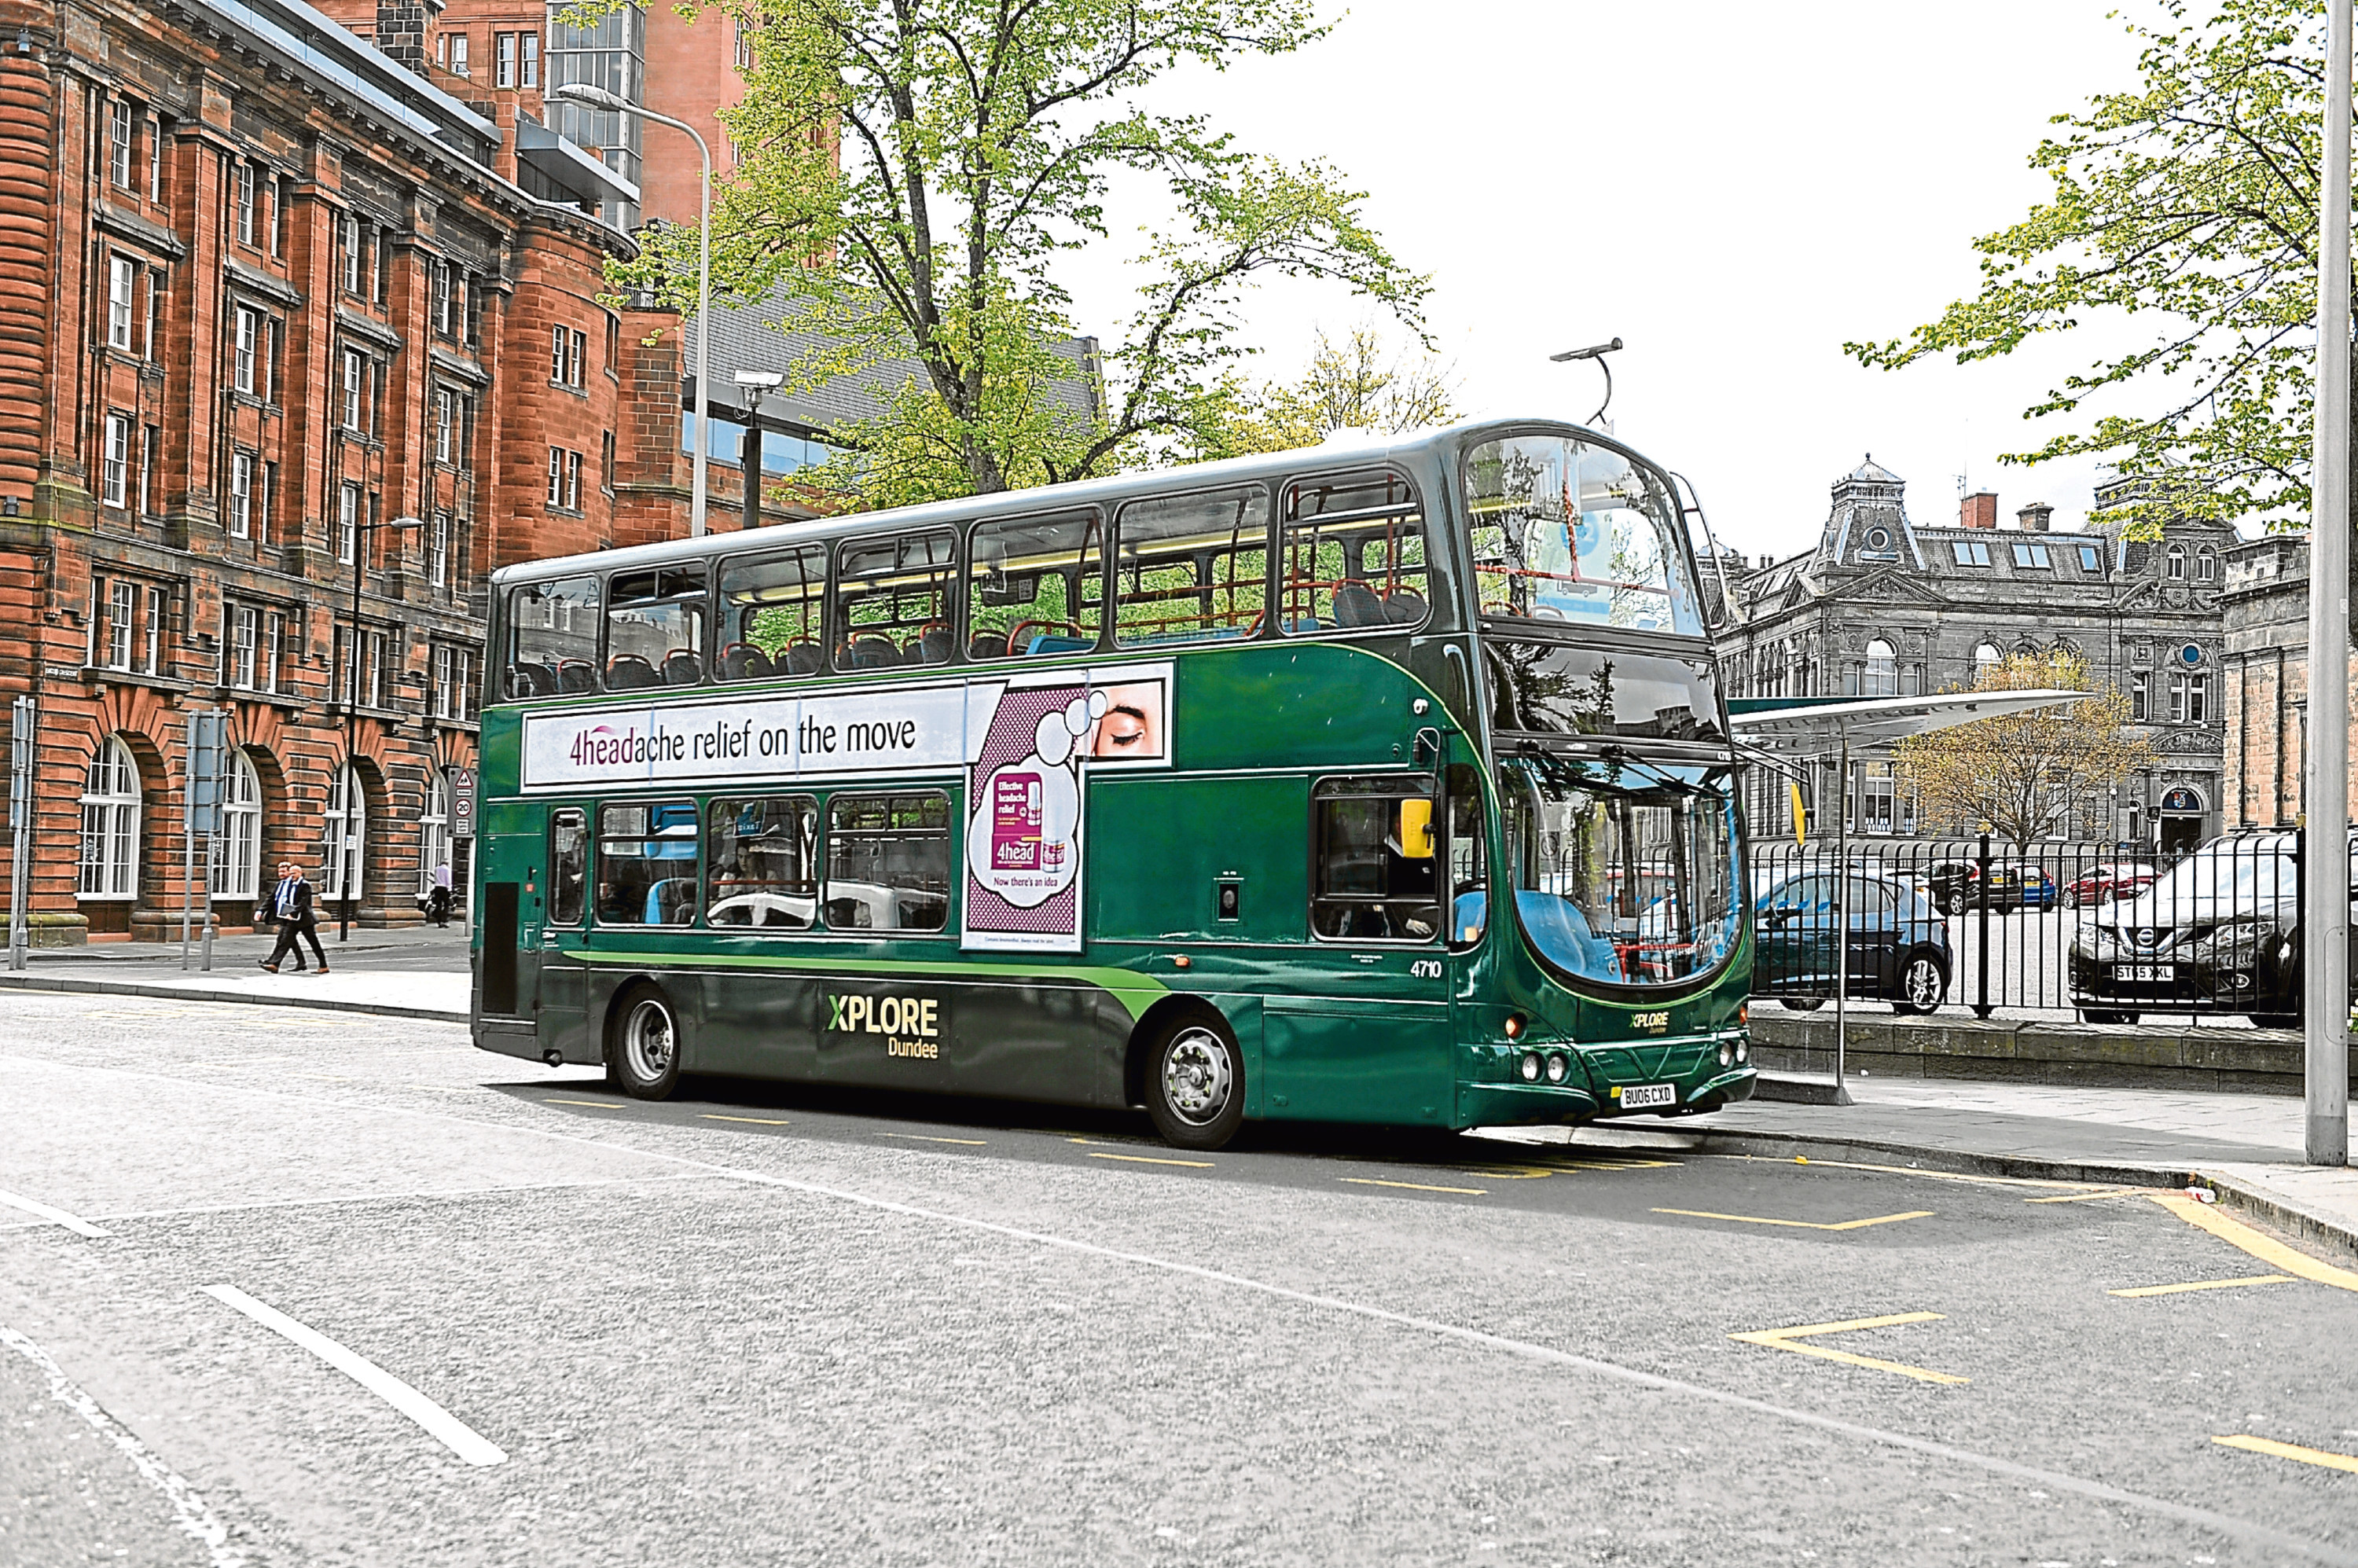 An Xplore Dundee bus in the city centre